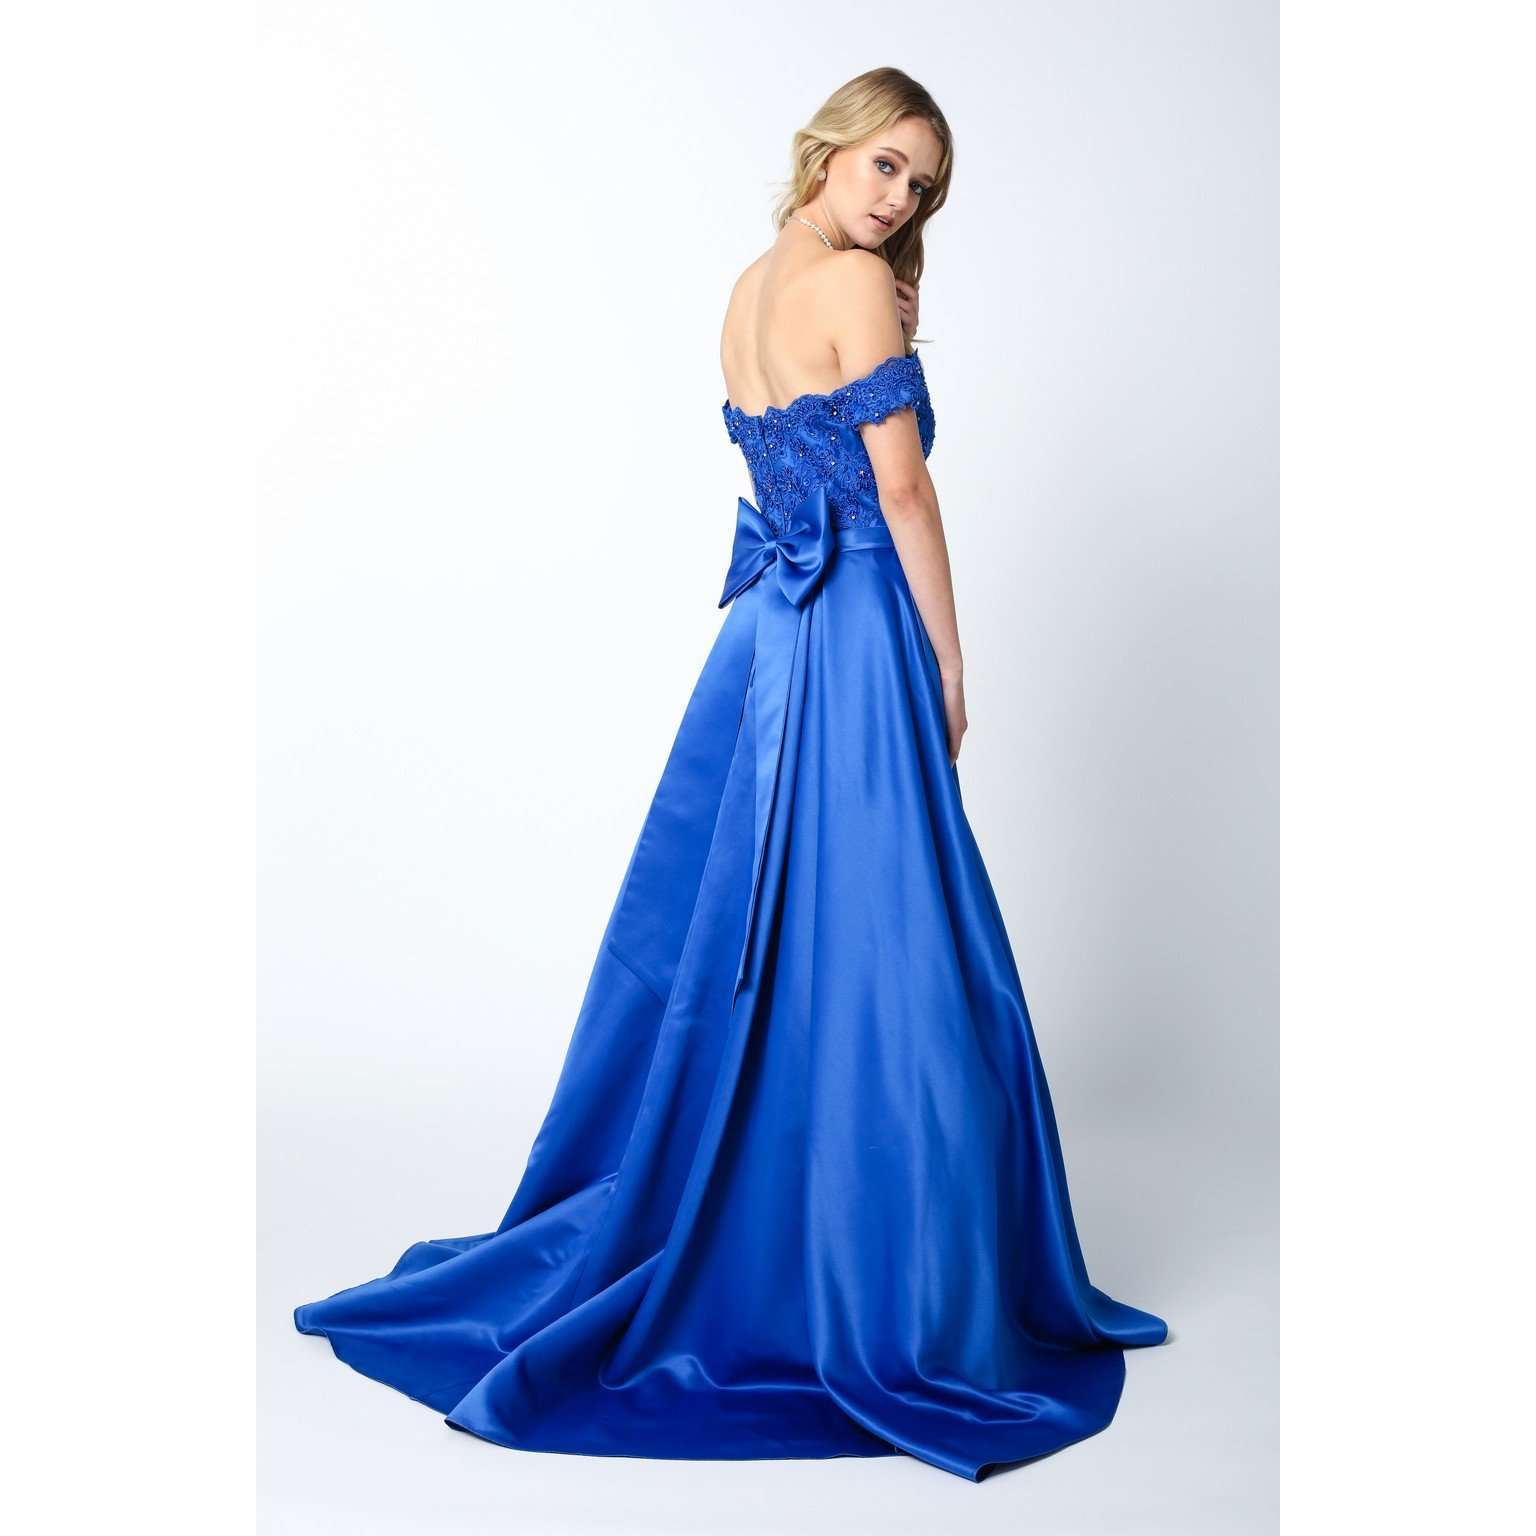 Embellished Bodice Off the Shoulder Prom Ballgown  371 - Julietdresses